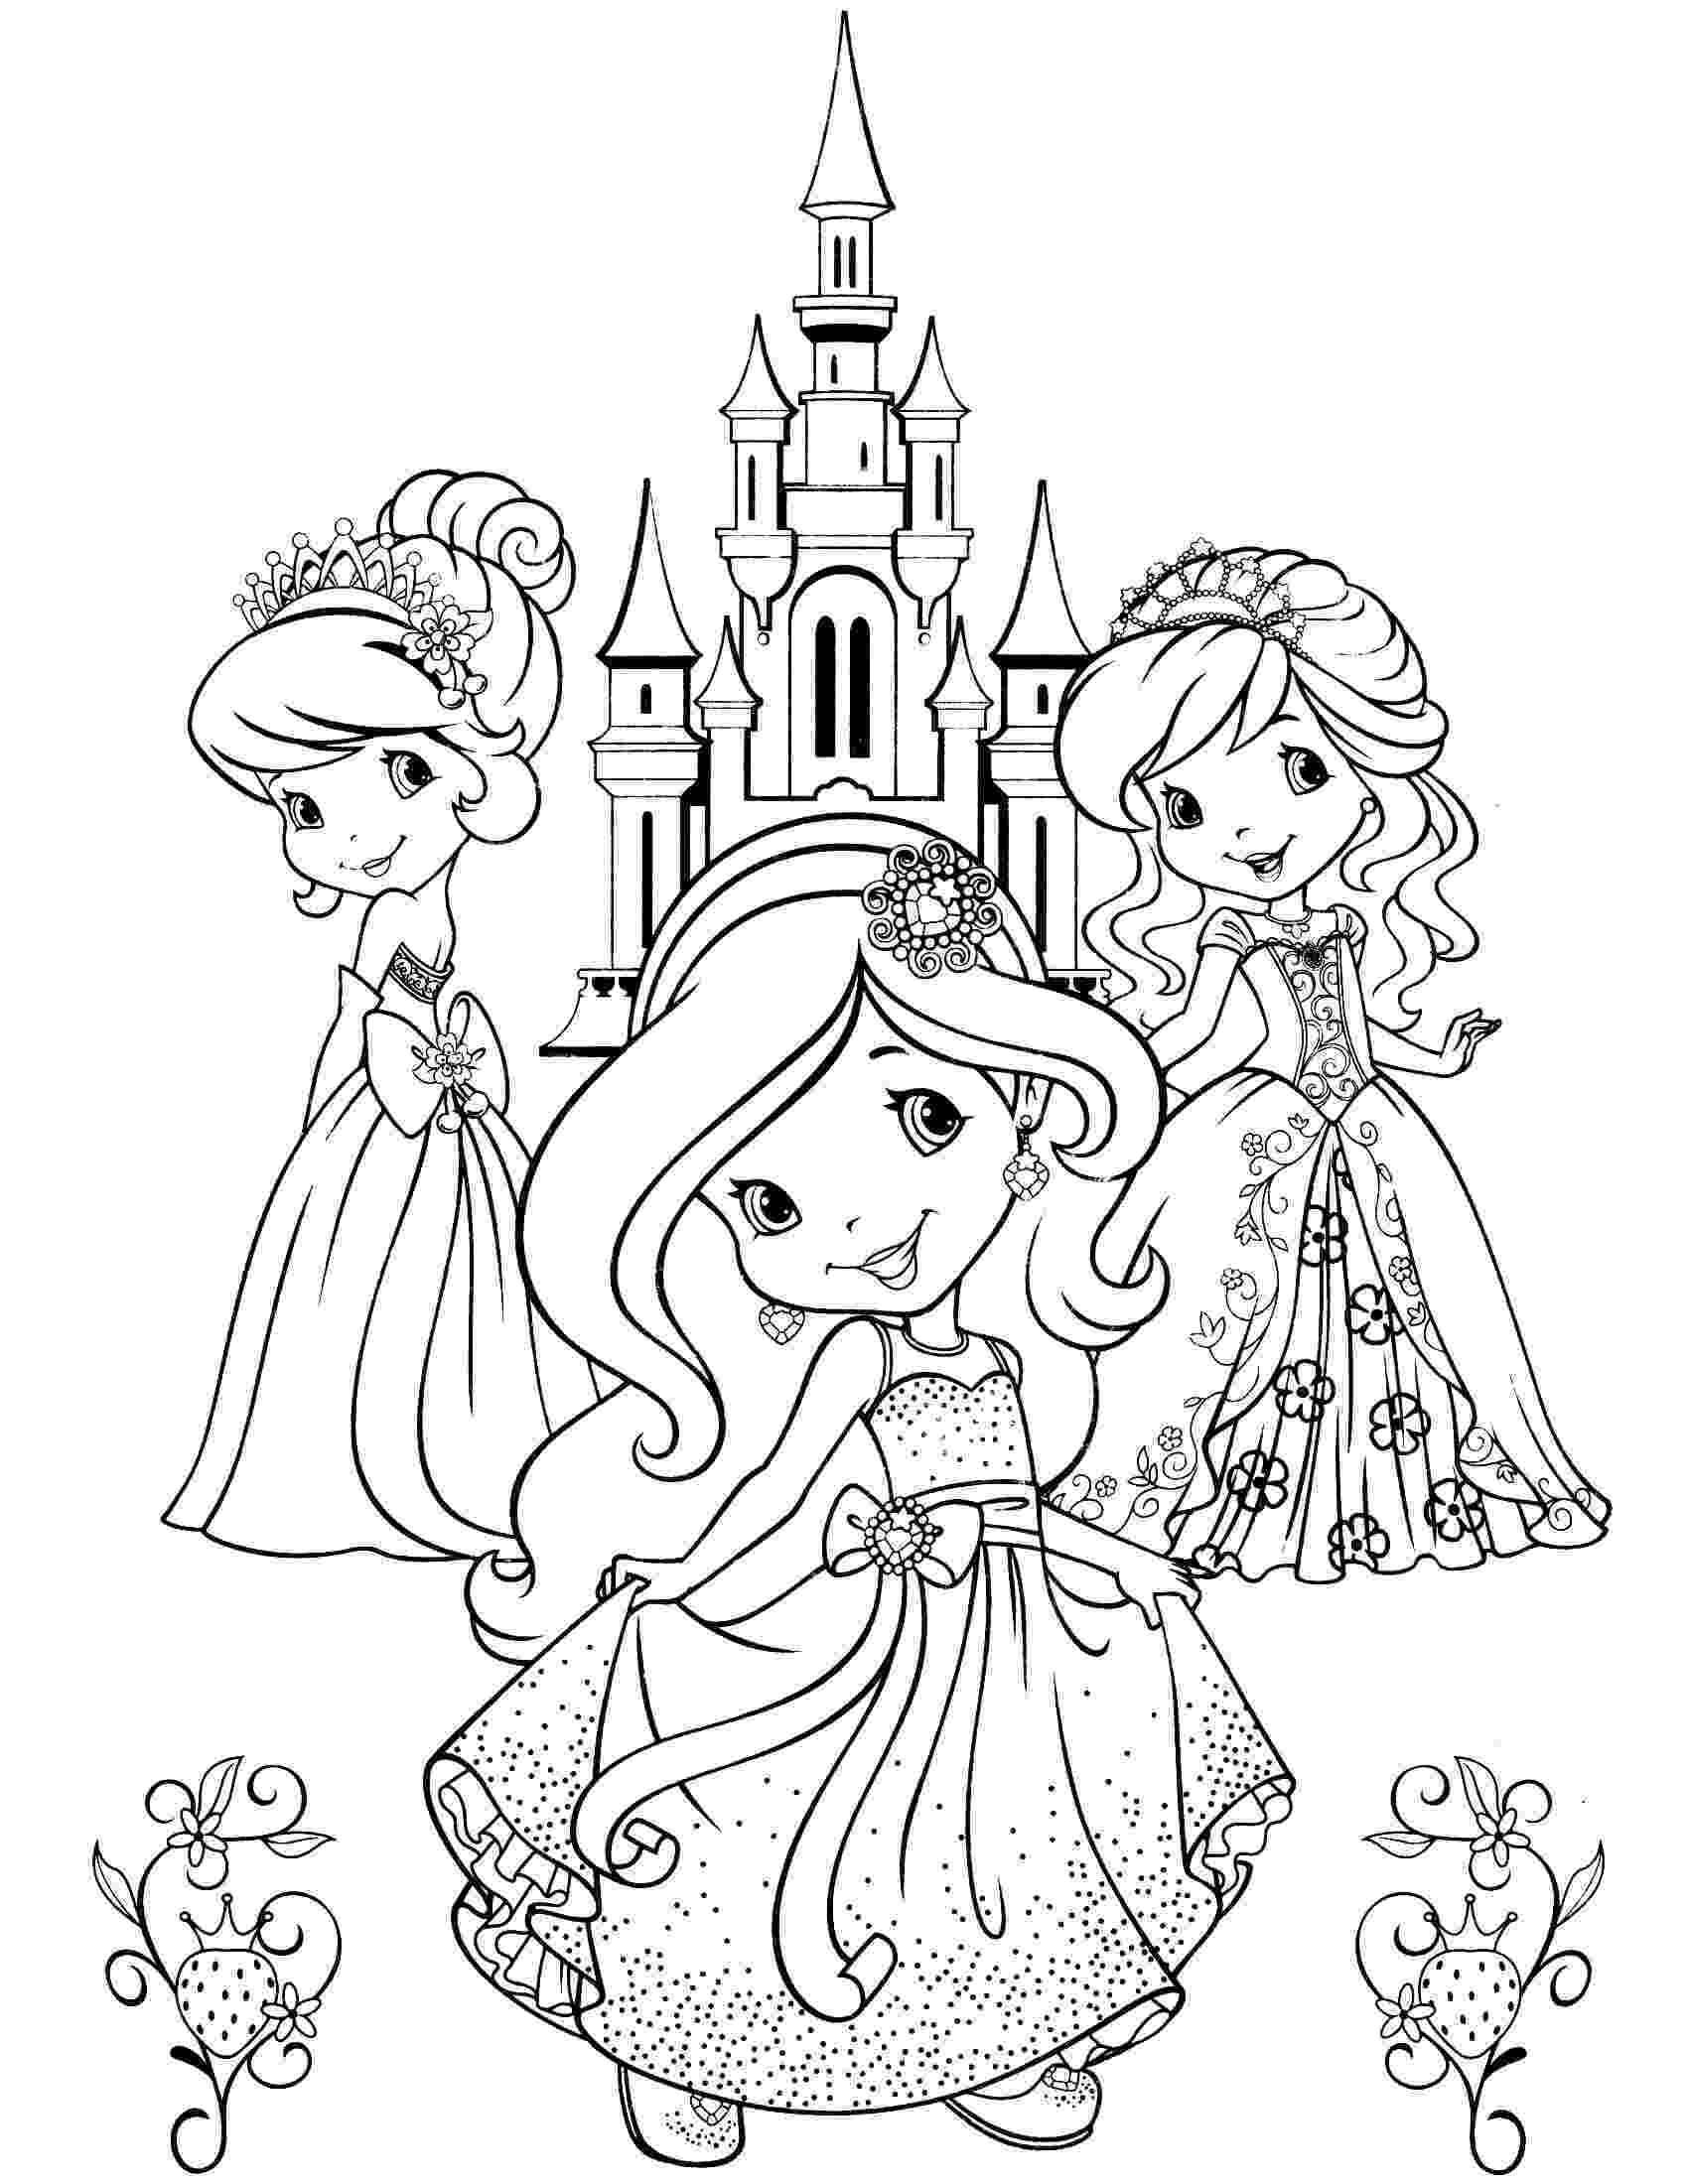 strawberry shortcake princess coloring pages download strawberry shortcake coloring pages digital coloring strawberry shortcake princess pages